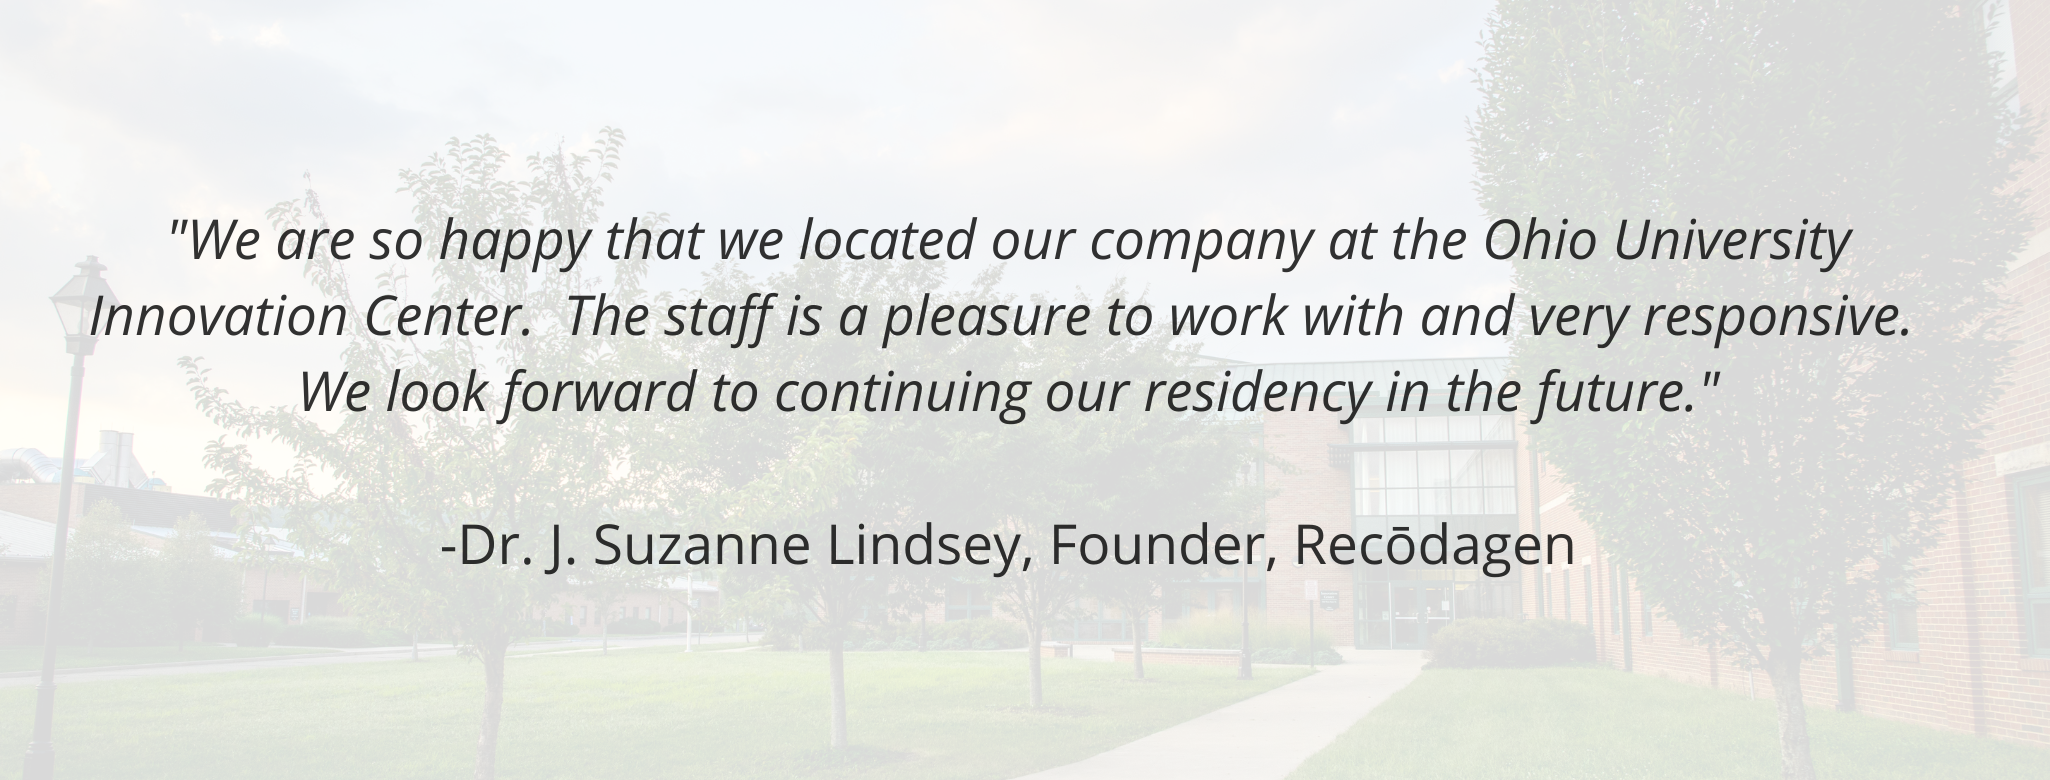 """We are so happy that we located our company at the Ohio University Innovation Center.  The staff is a pleasure to work with and very responsive.  We look forward to continuing our residency in the future.""   -Dr. J. Suzanne Lindsey, Founder, Recōdagen"